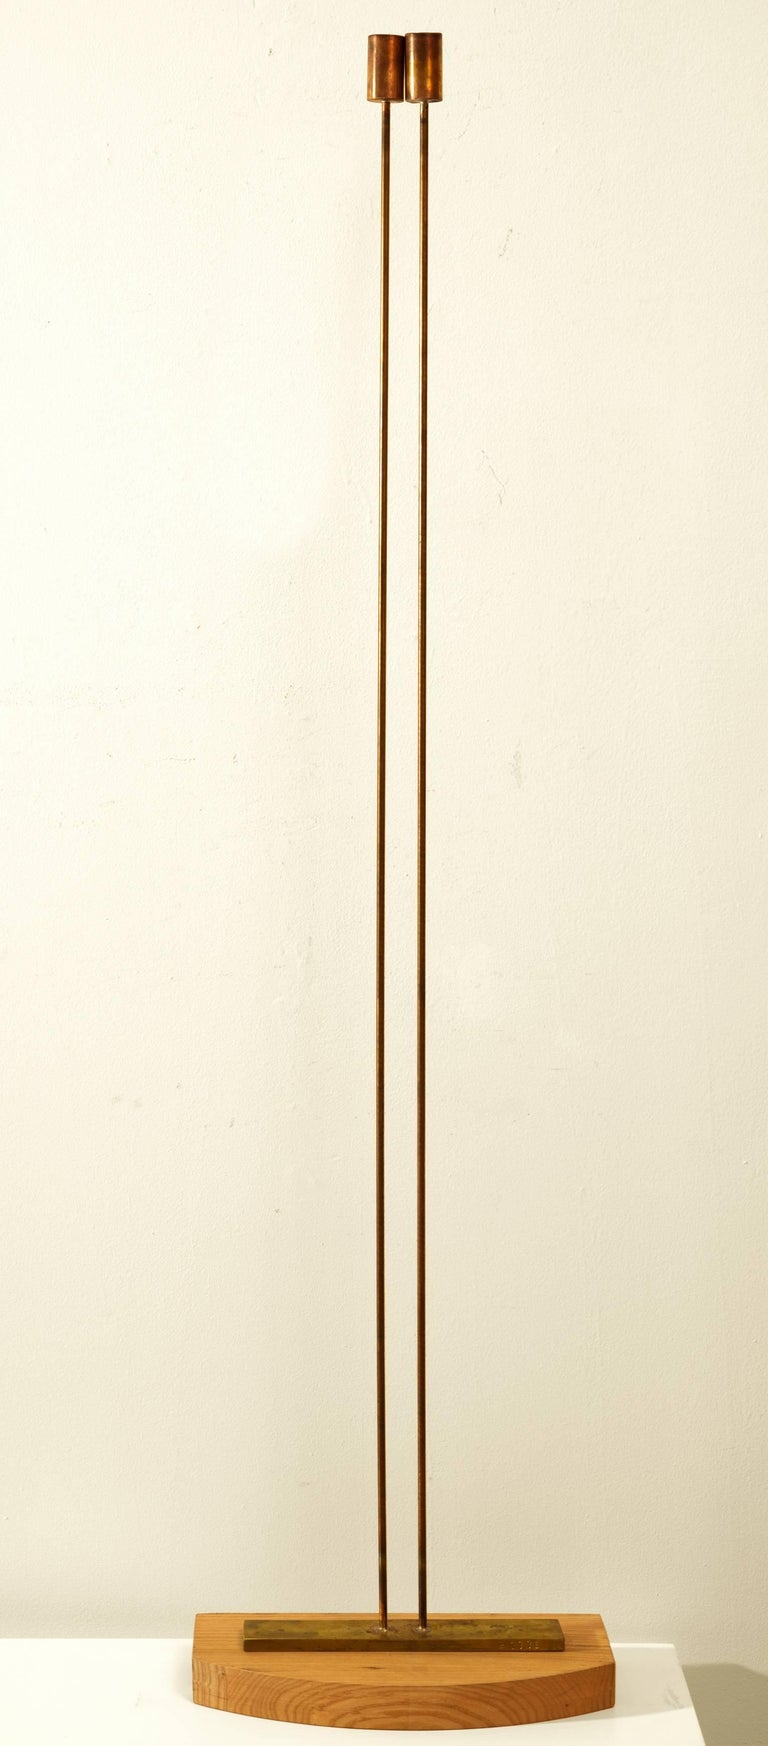 Val Bertoia Abstract Sculpture - 2 Rods on Wooden Base